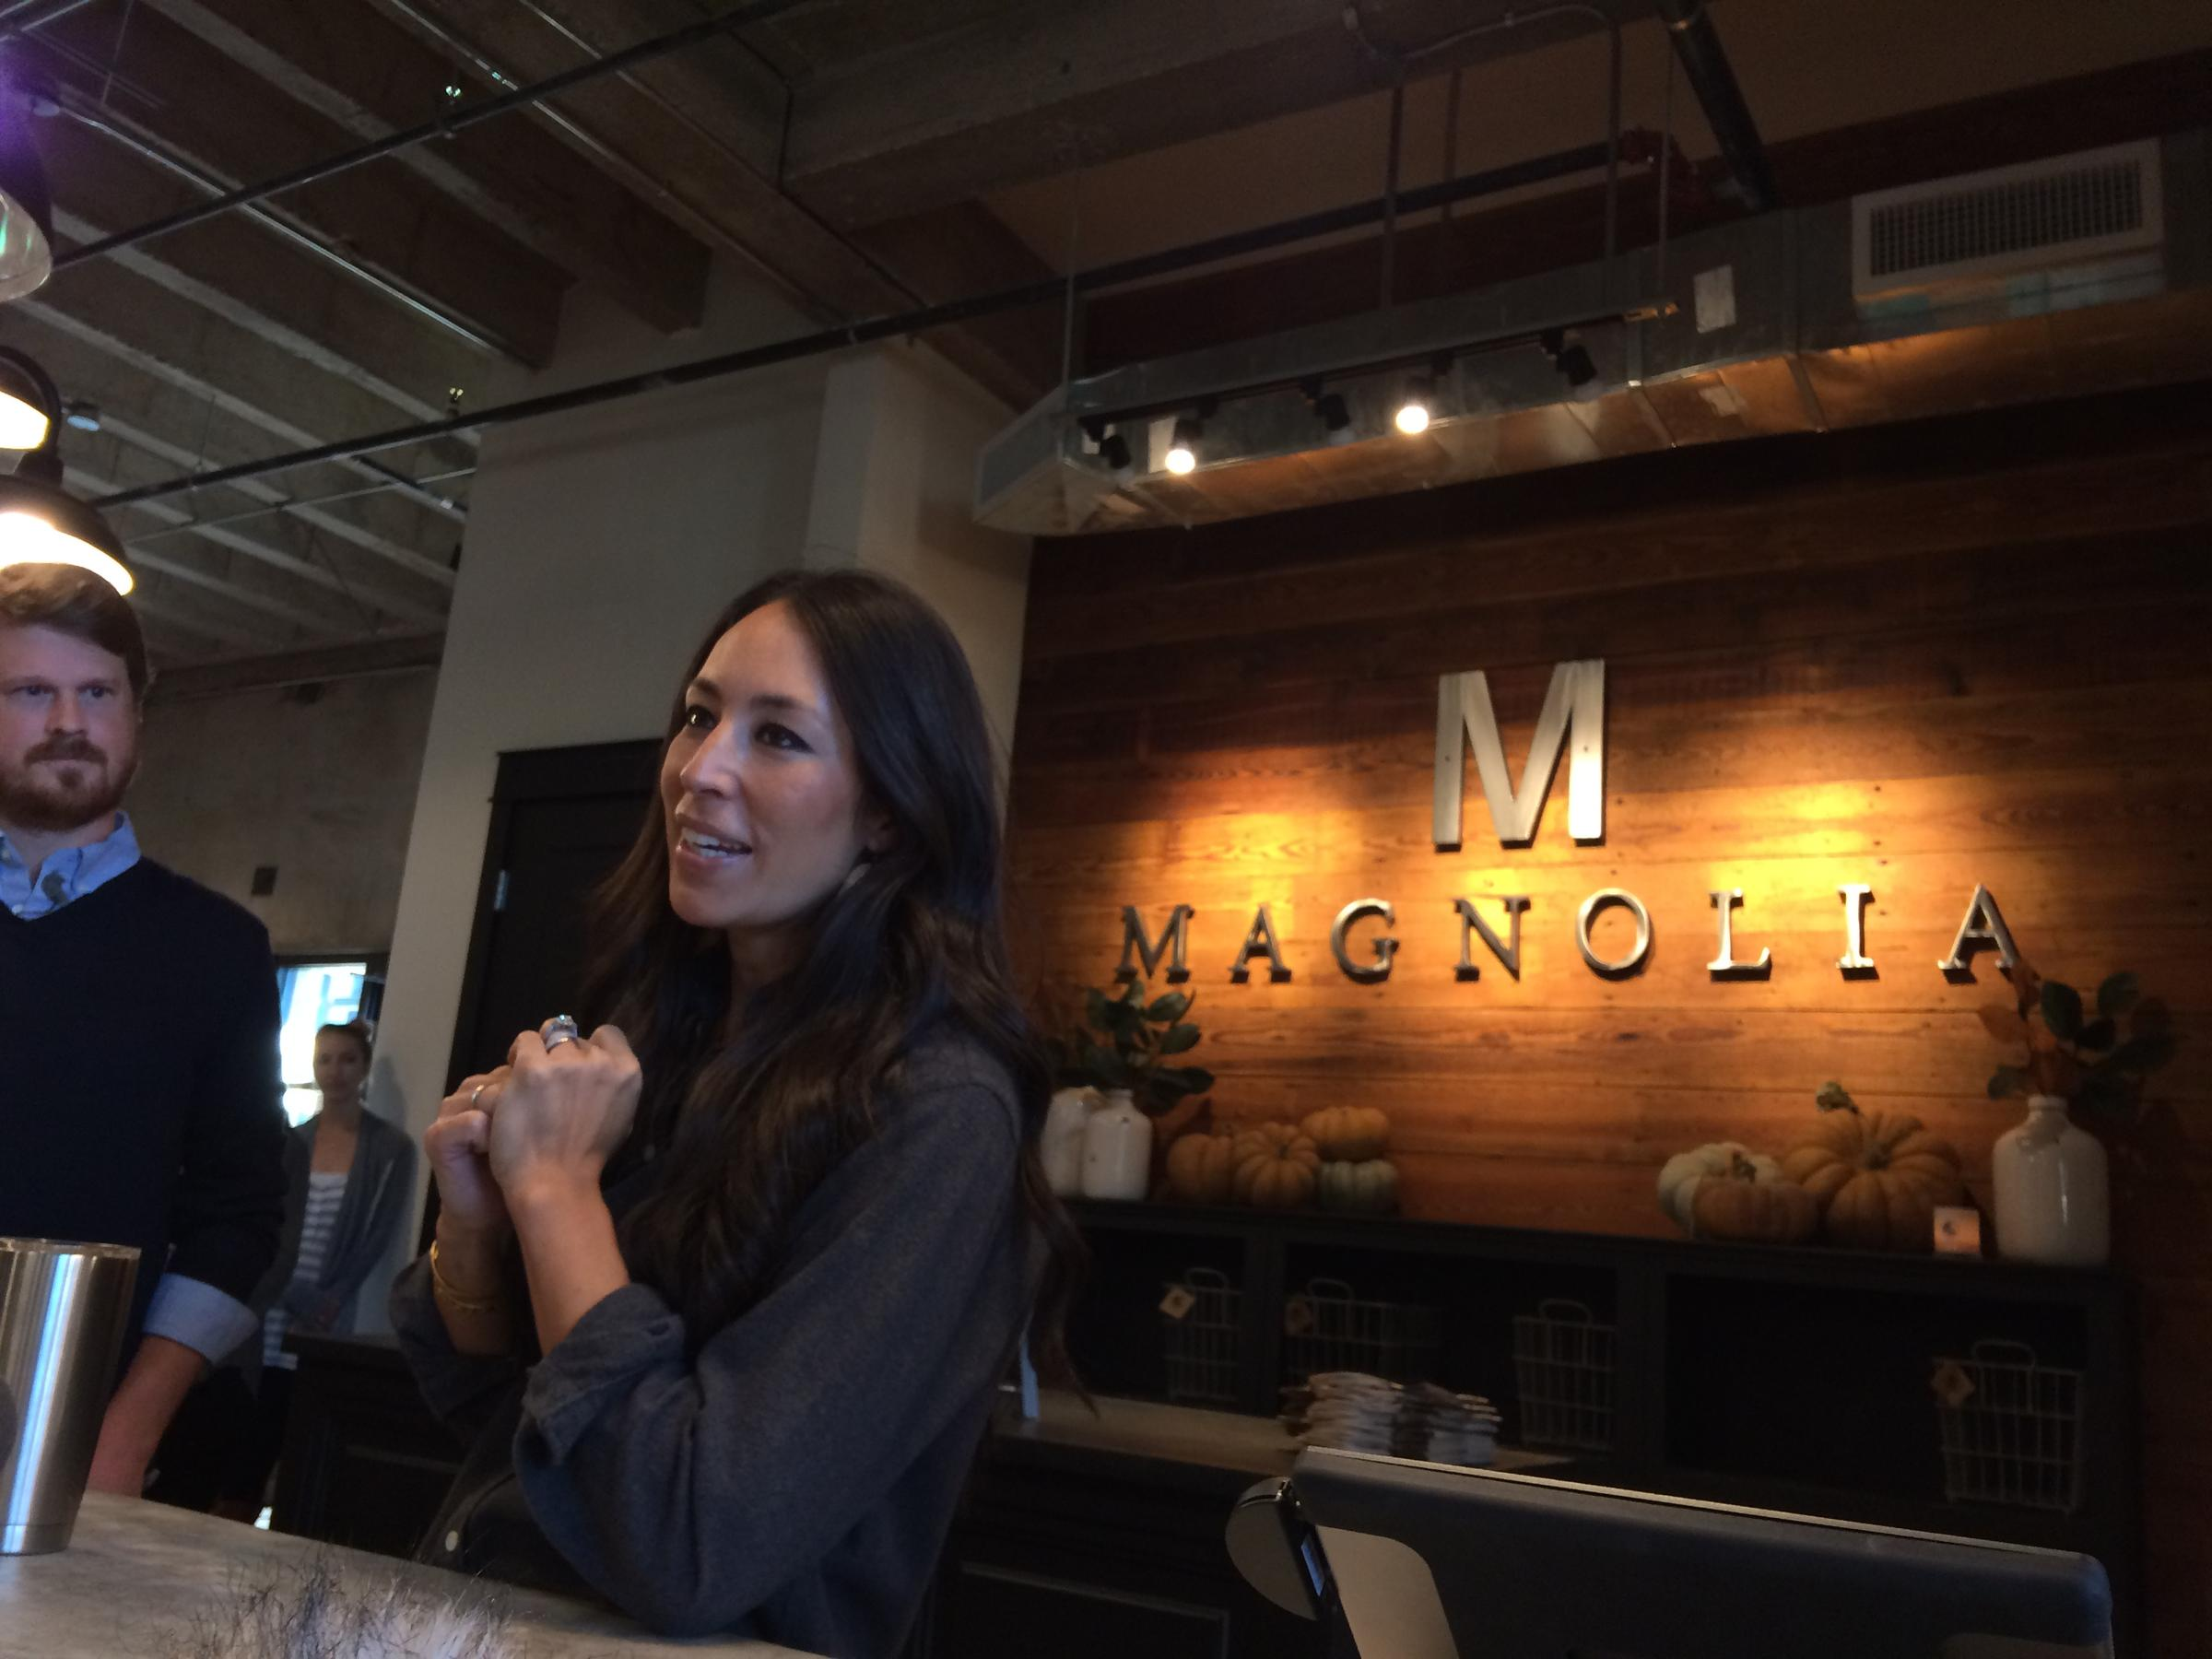 Magnolia market opens to fanfare vistors from across for Chip and joanna gaines meet and greet